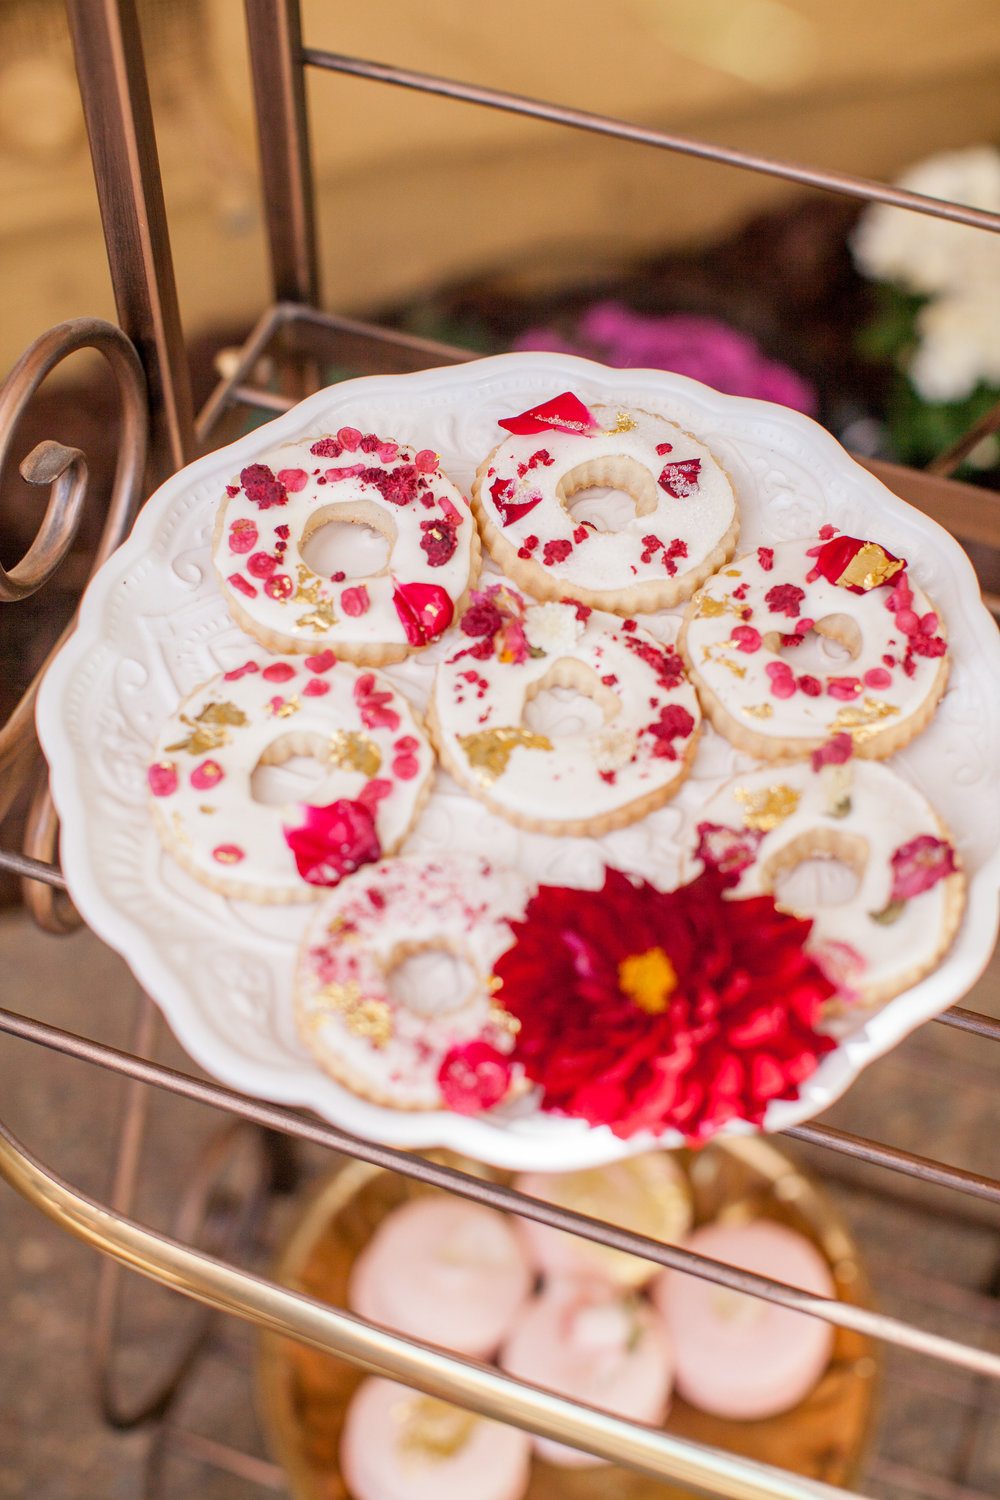 Rosé Inspired Bridal Shower desserts